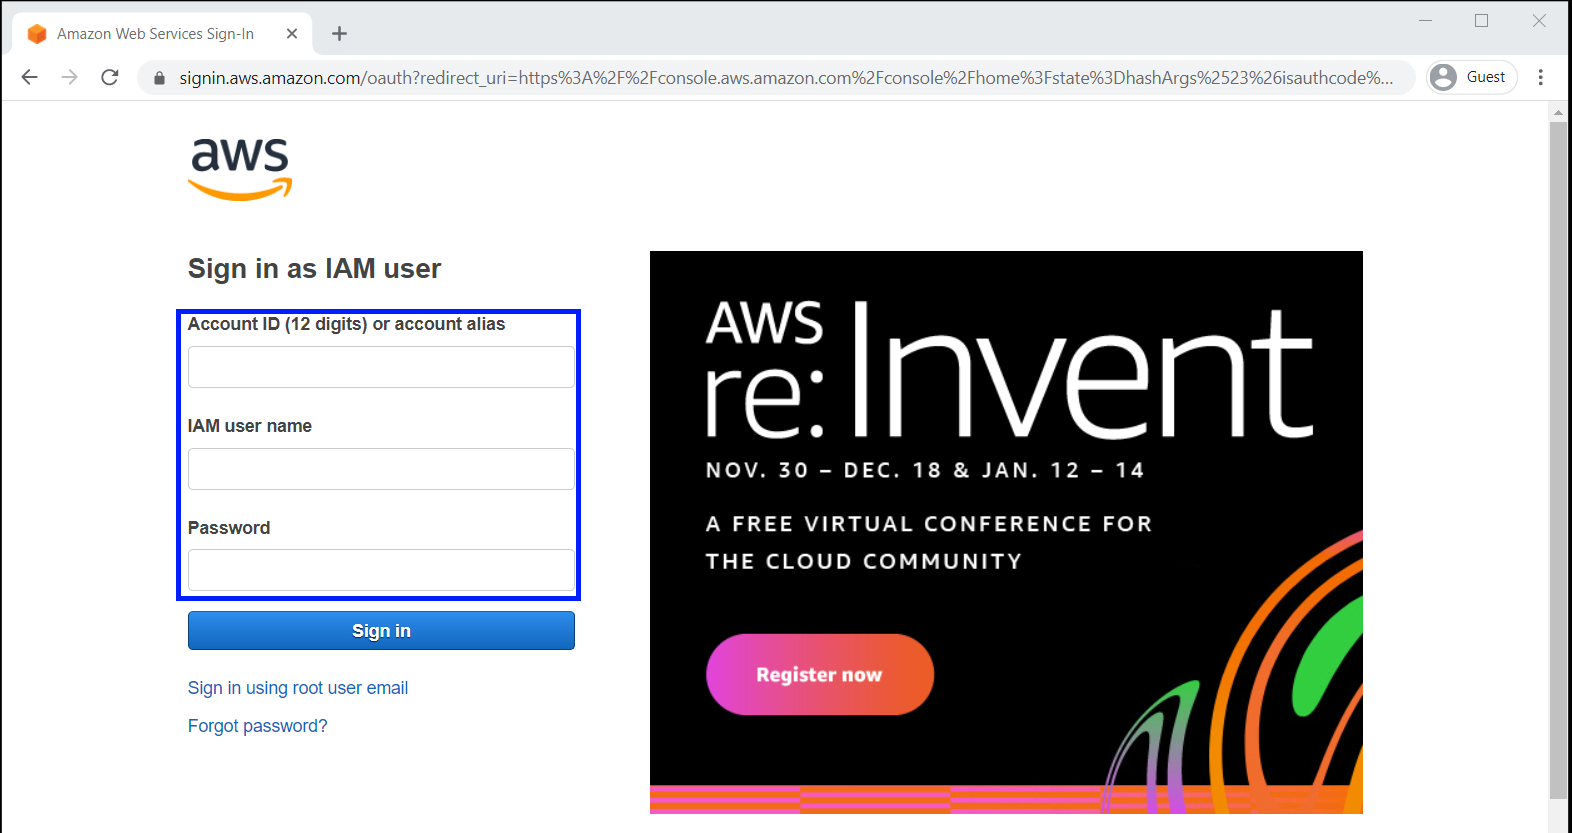 Login to AWS console as IAM user